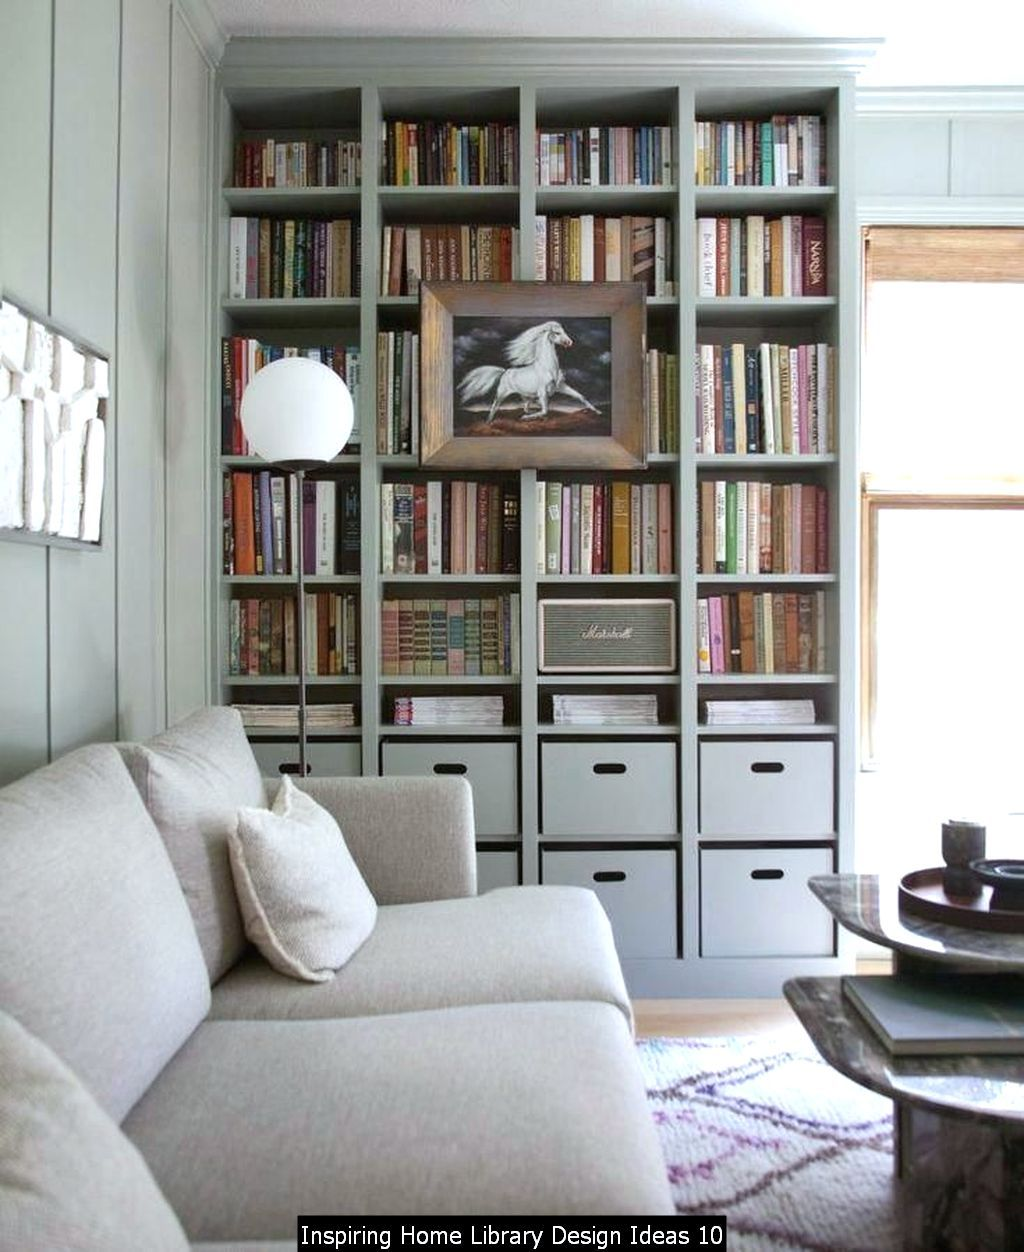 Inspiring Home Library Design Ideas In 2020